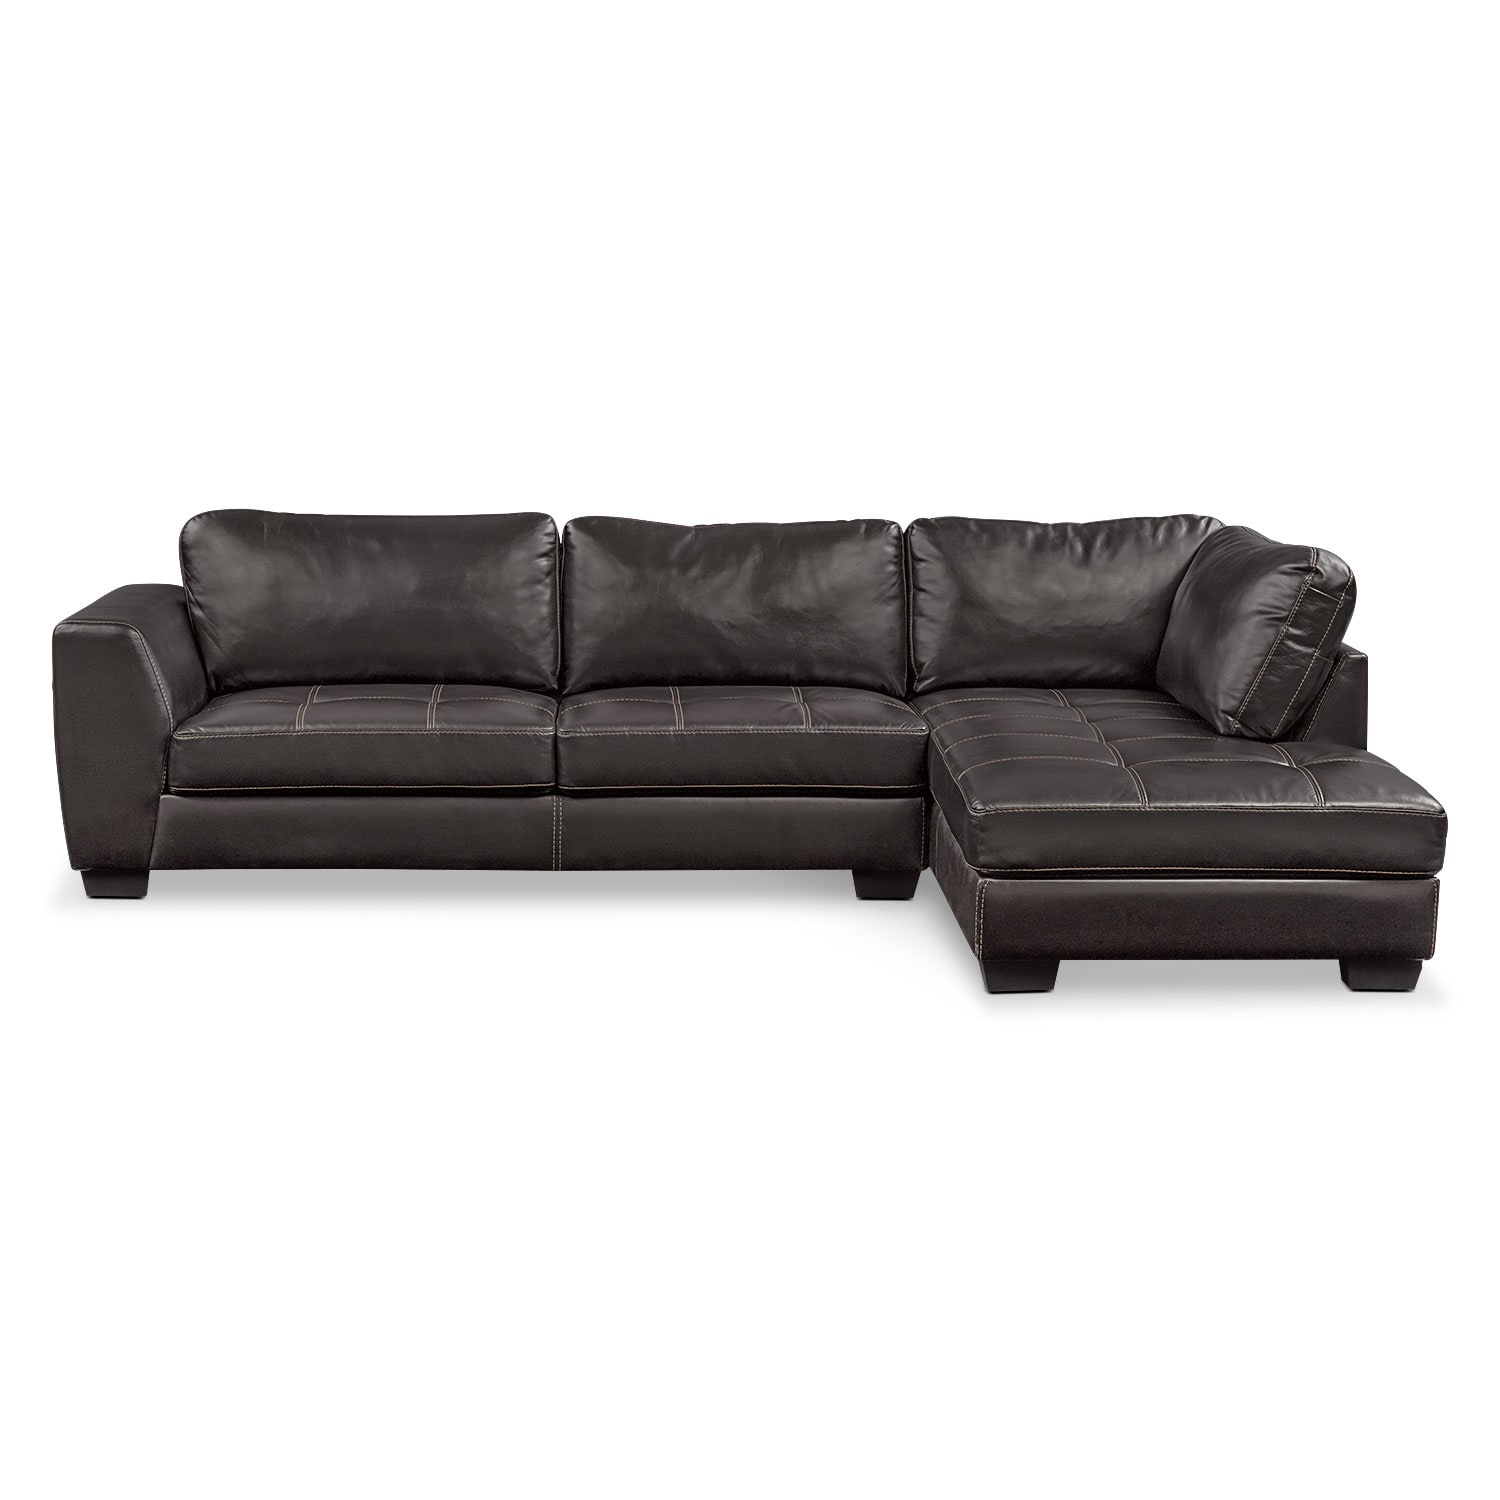 American Signature Furniture Com: Santana 2-Piece Sectional With Right-Facing Chaise